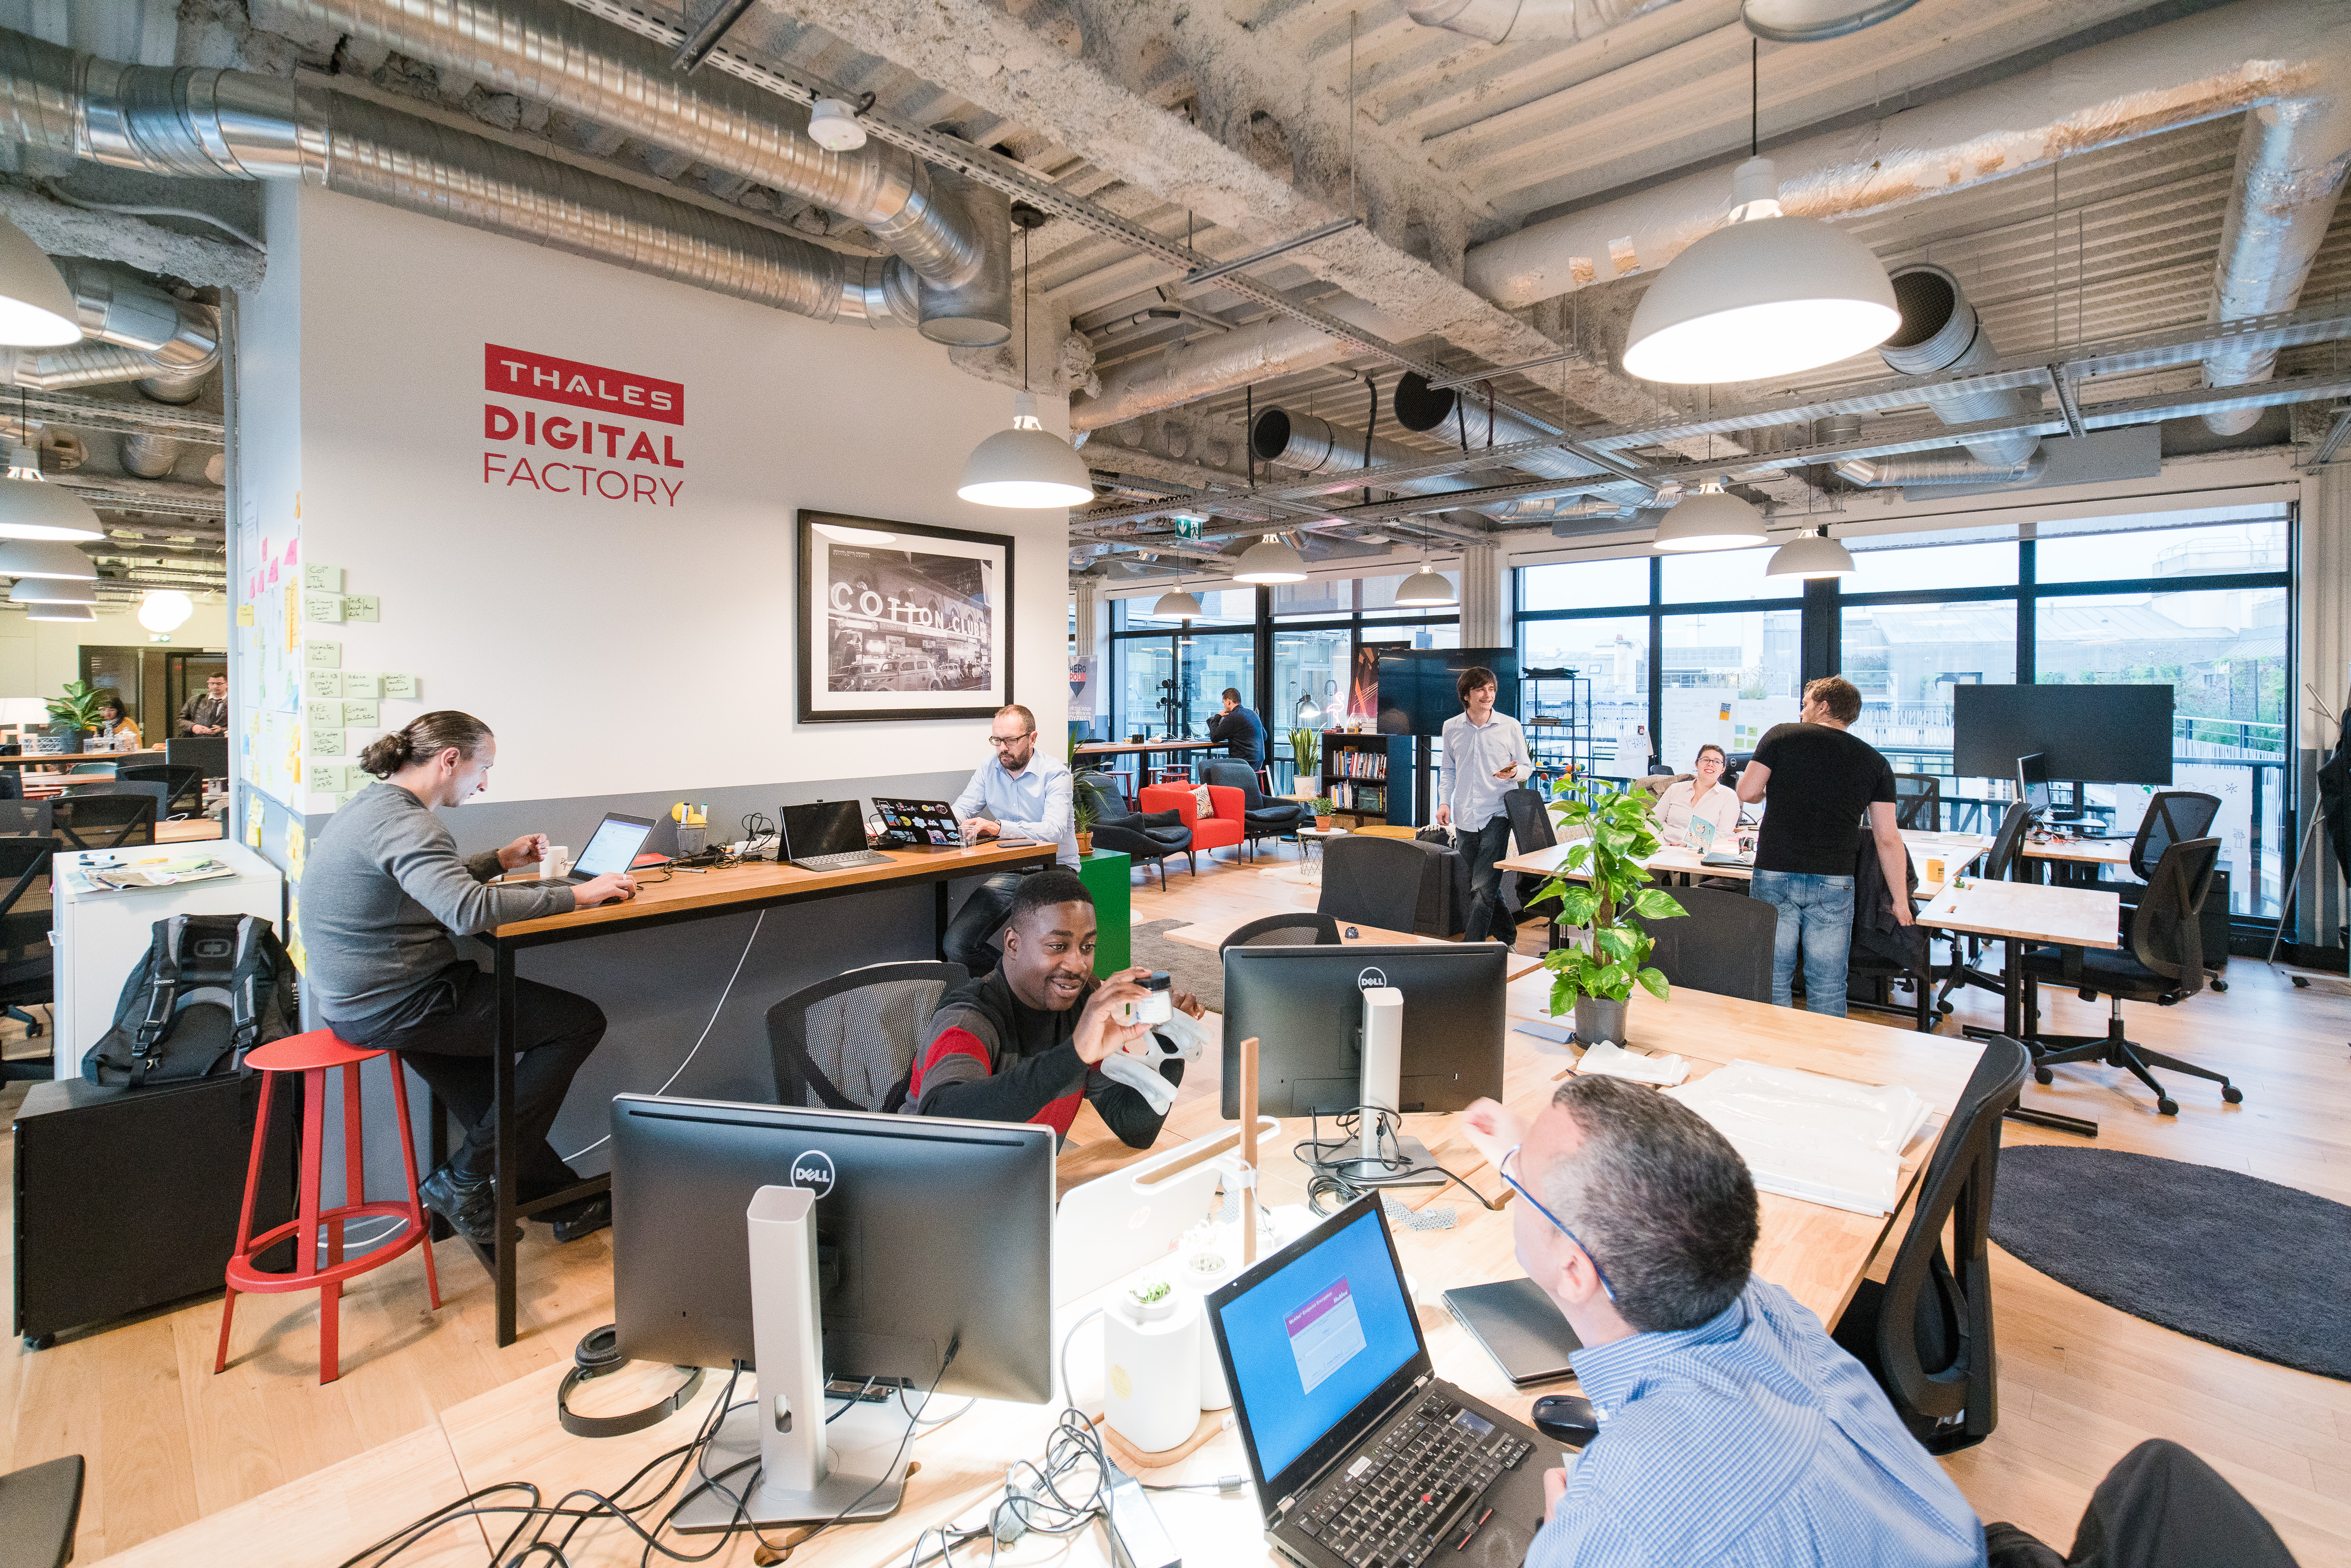 Thales Digital Factory at WeWork Paris